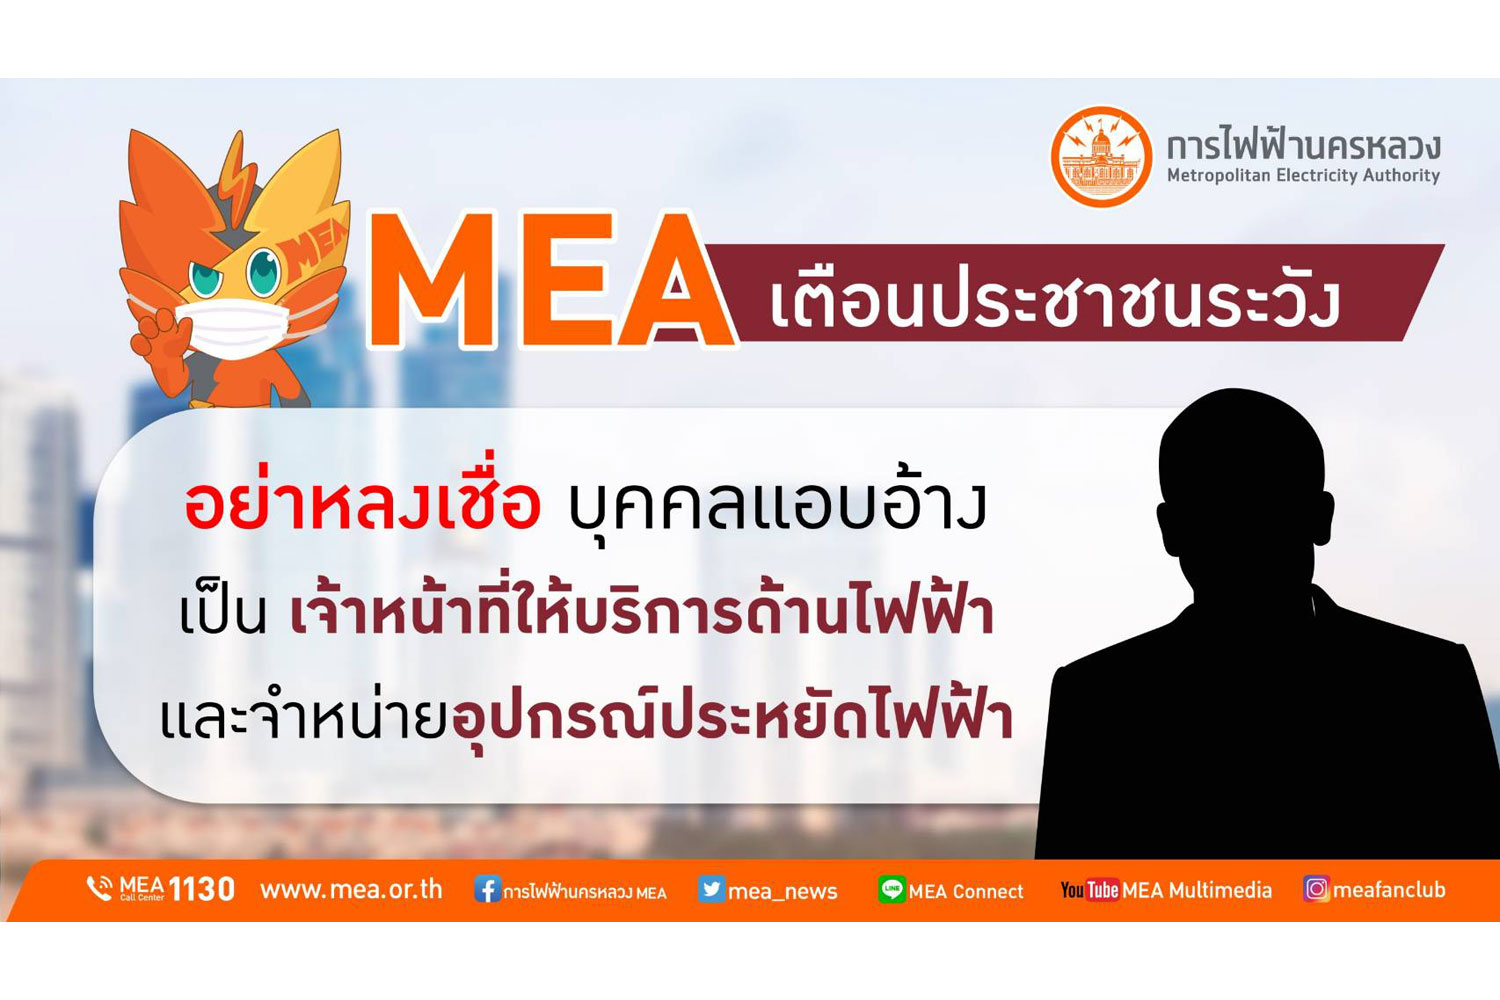 MEA in collaboration with SC Asset launches new service